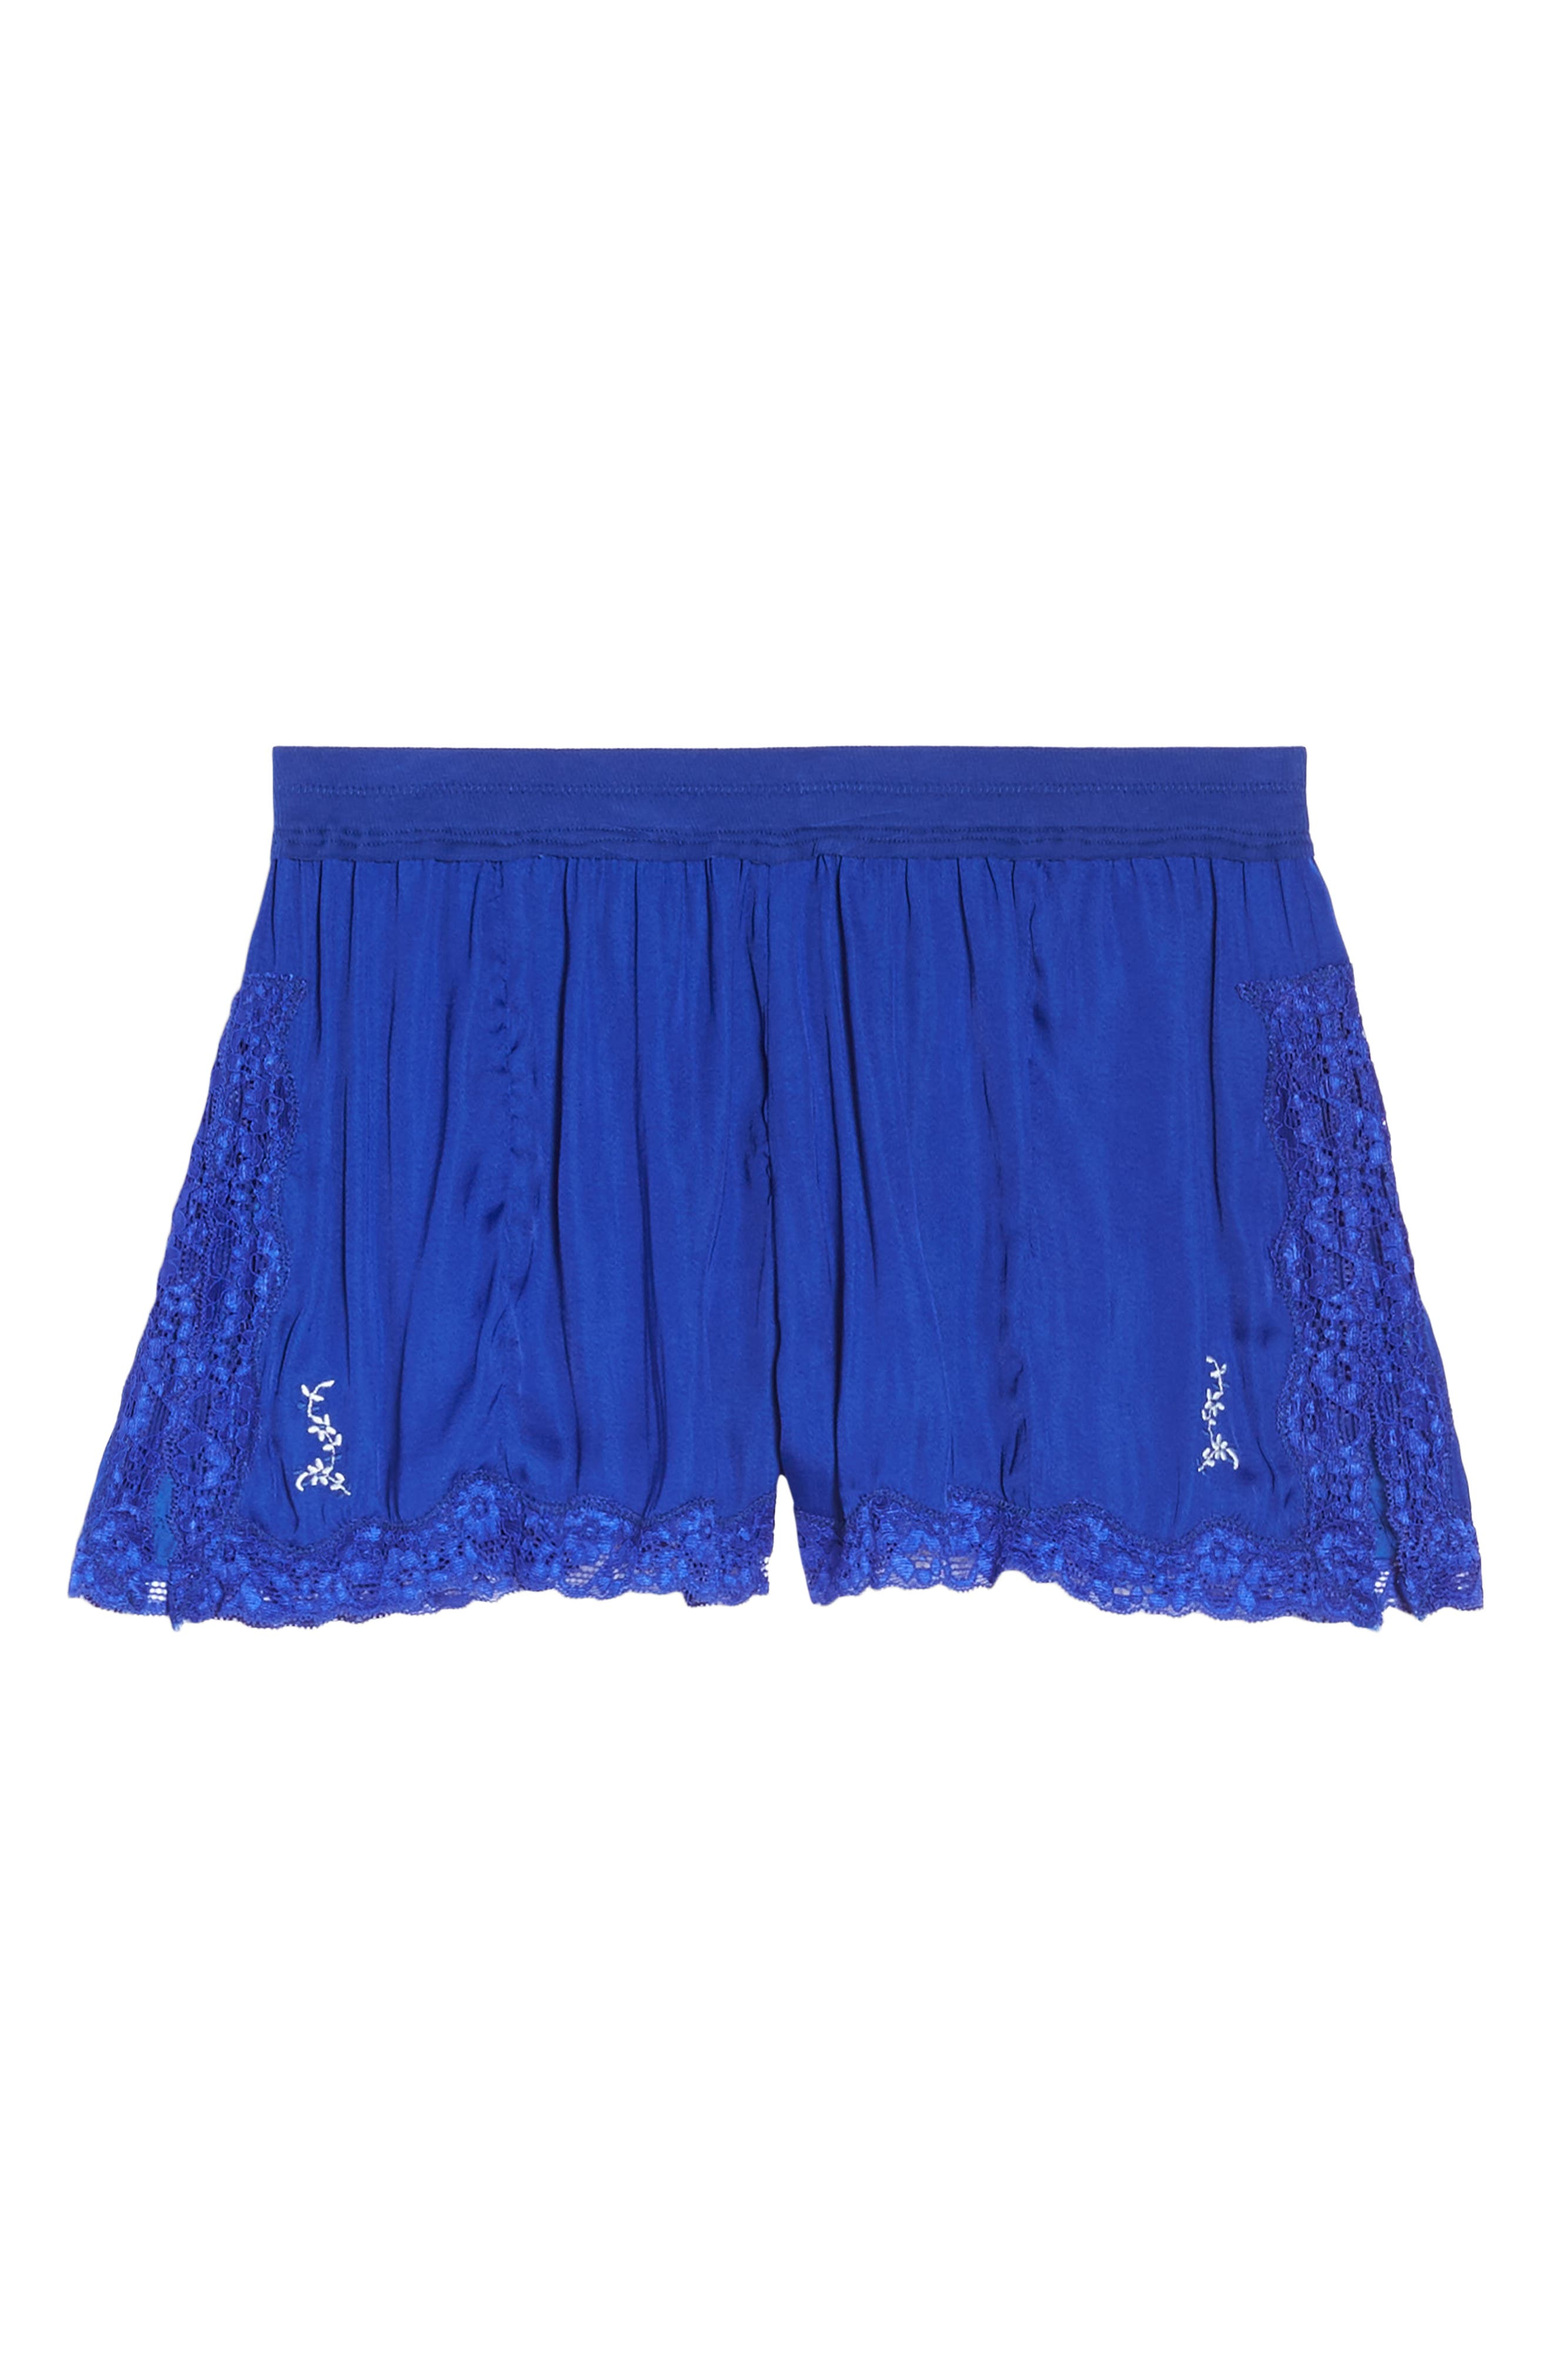 Intimately FP High Side Shorts,                             Alternate thumbnail 6, color,                             400